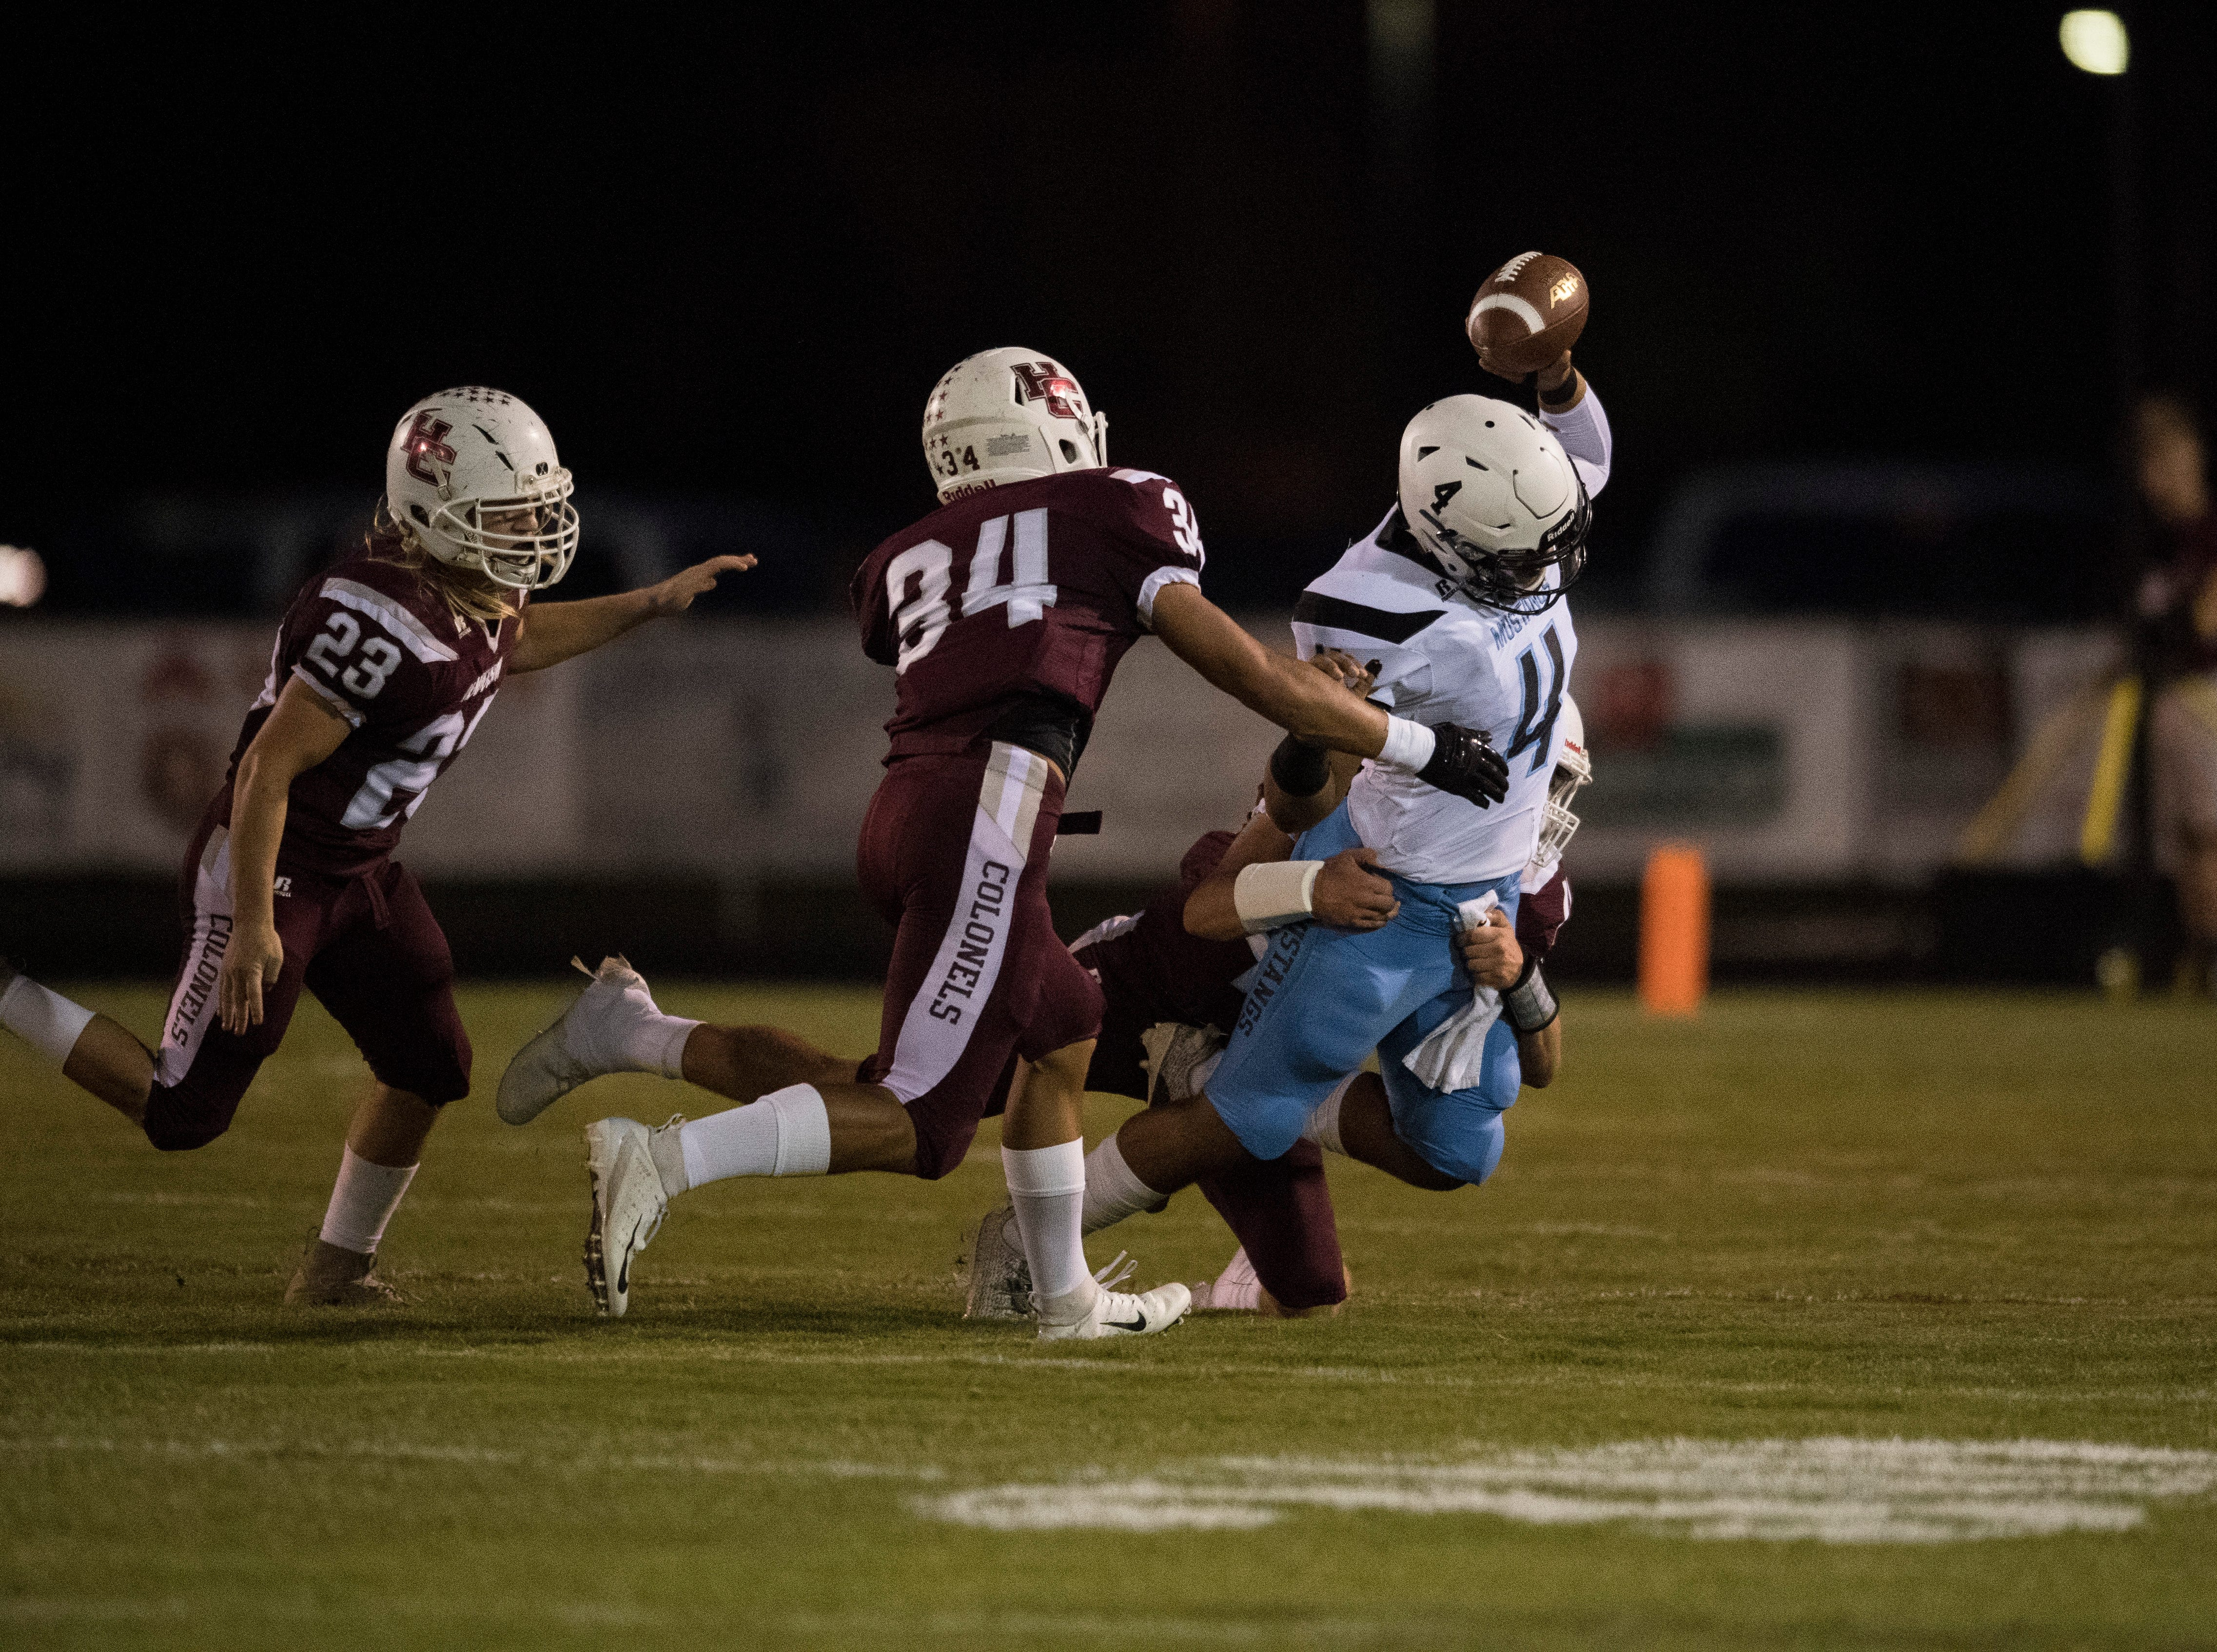 Muhlenberg County's Bronzyn Healy (4) is tackled by Henderson's Ian Pitt (45) during the Henderson vs Muhlenberg County game at Colonel Stadium Friday, Sept. 28, 2018. The Henderson County Colonels won, 61-6.